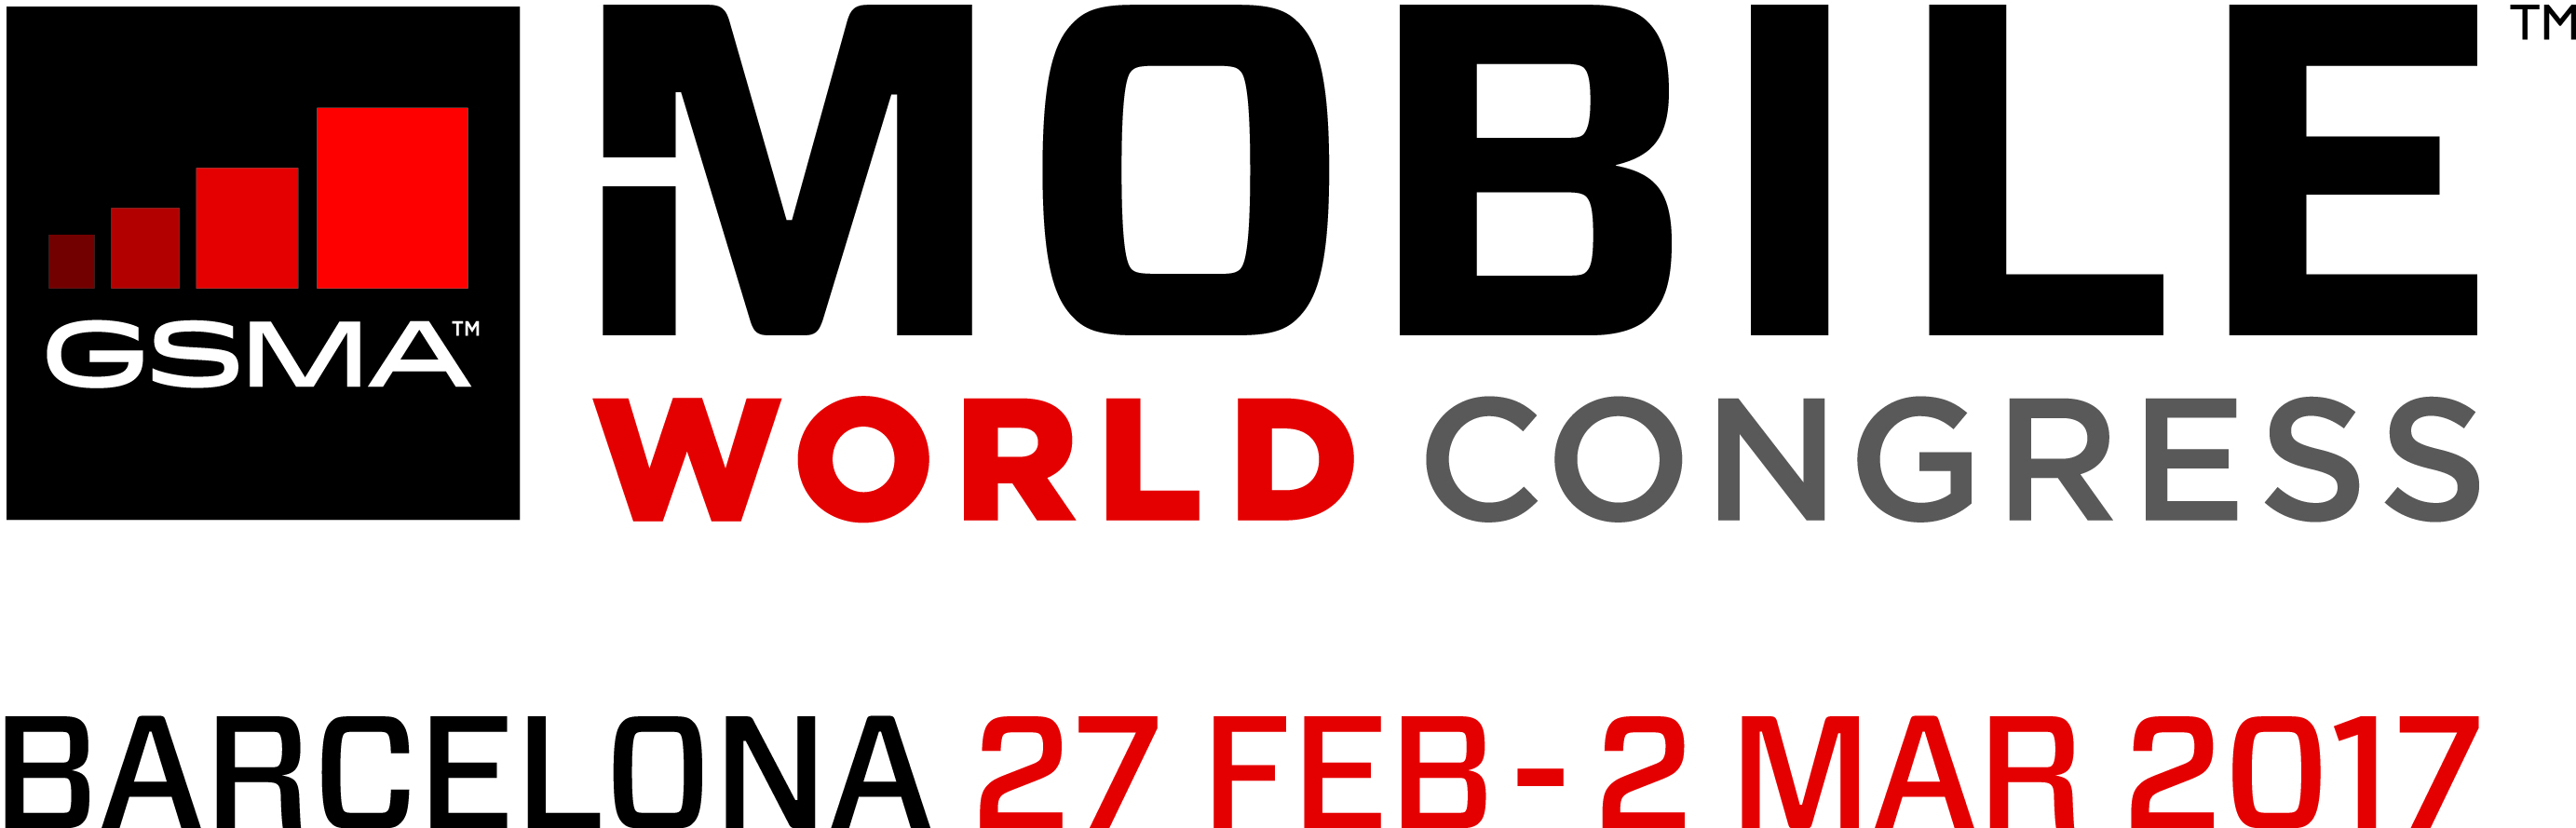 Logo del Mobile World Congress 2017 Barcelona